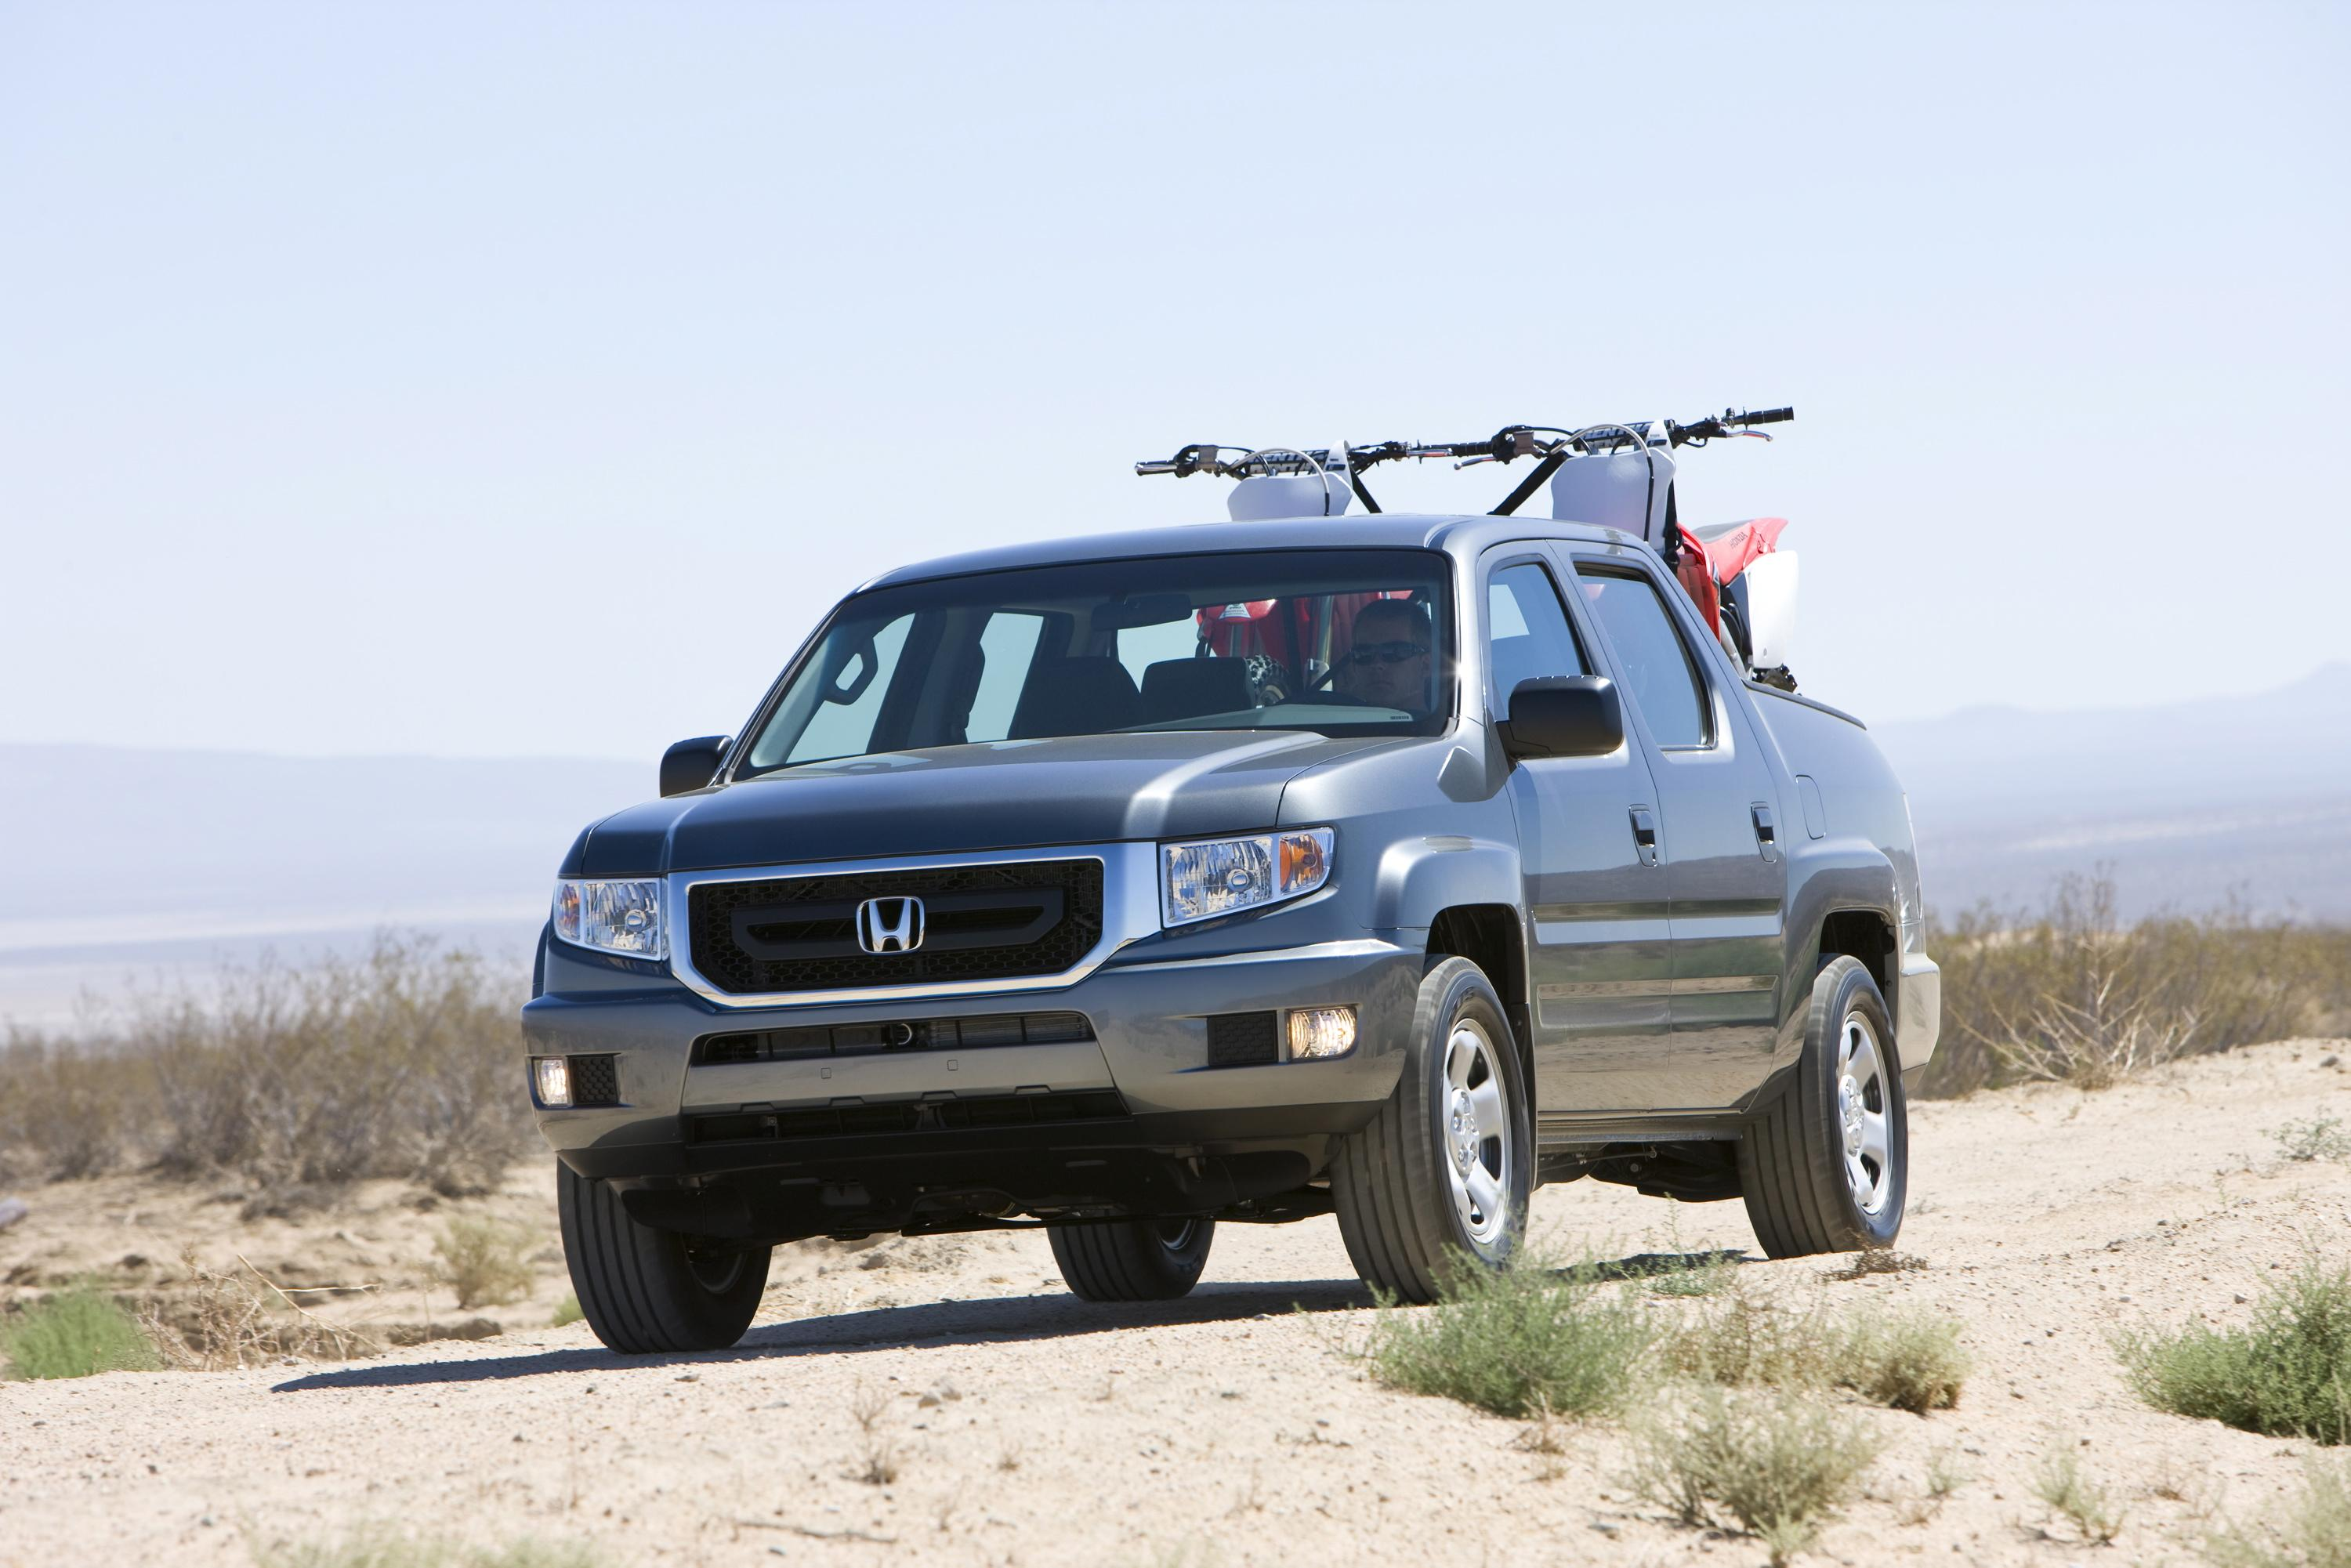 2009 Honda Ridgeline Hd Pictures Trailer Wiring Harness Further 2006 Thumbnail Photo 69790